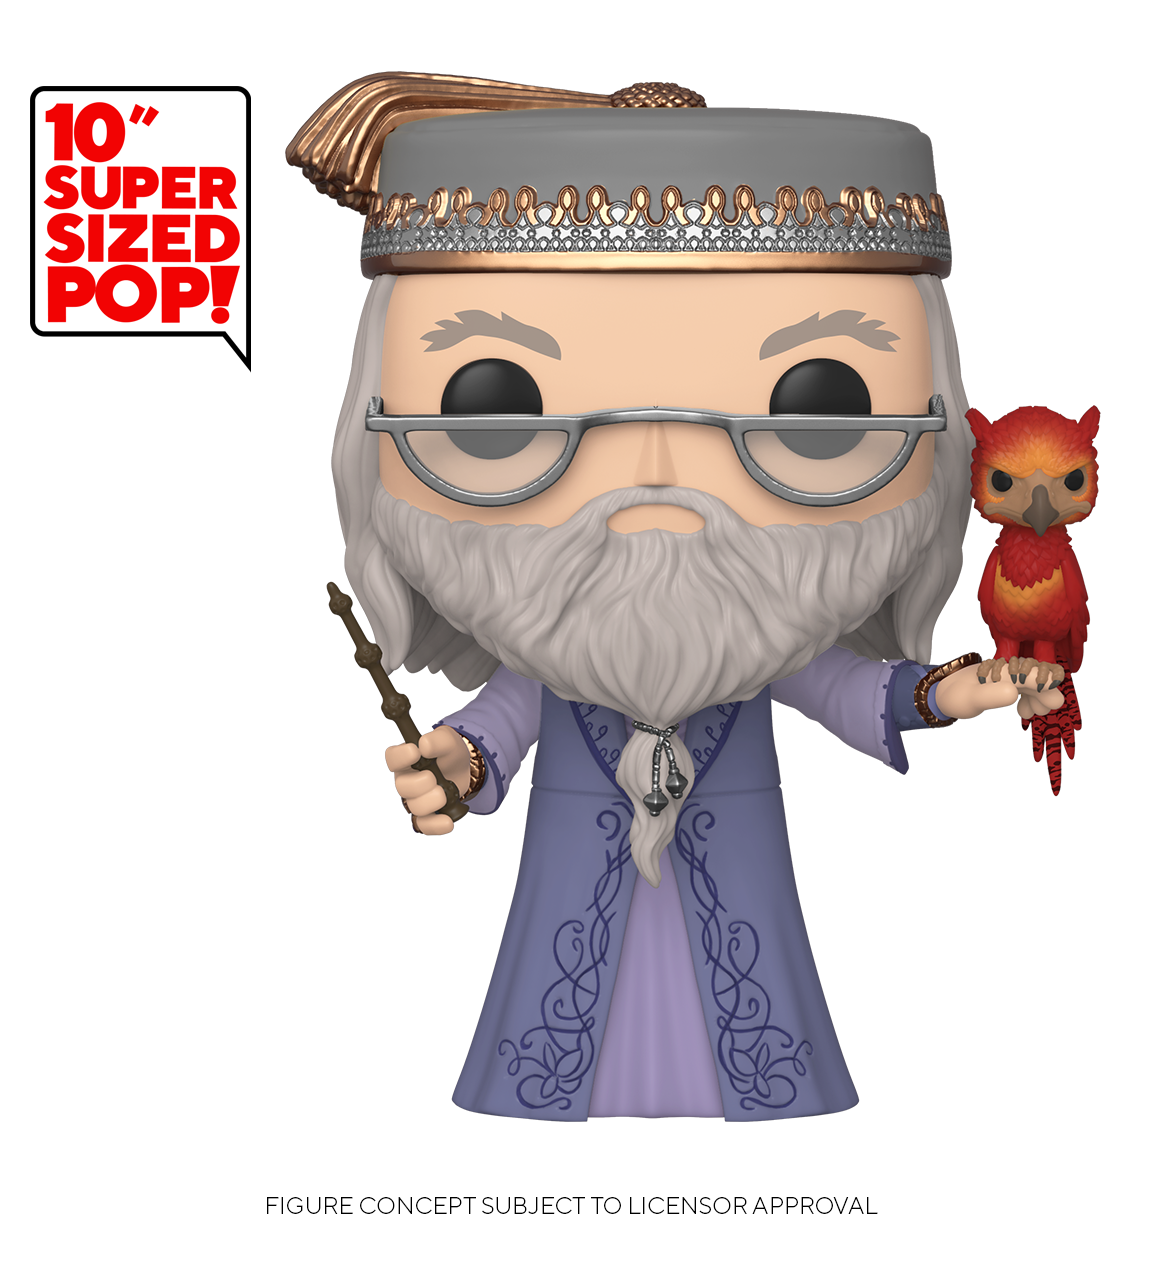 """Harry Potter: Dumbledore (with Fawkes) - 10"""" Super Sized Pop! Vinyl Figure image"""